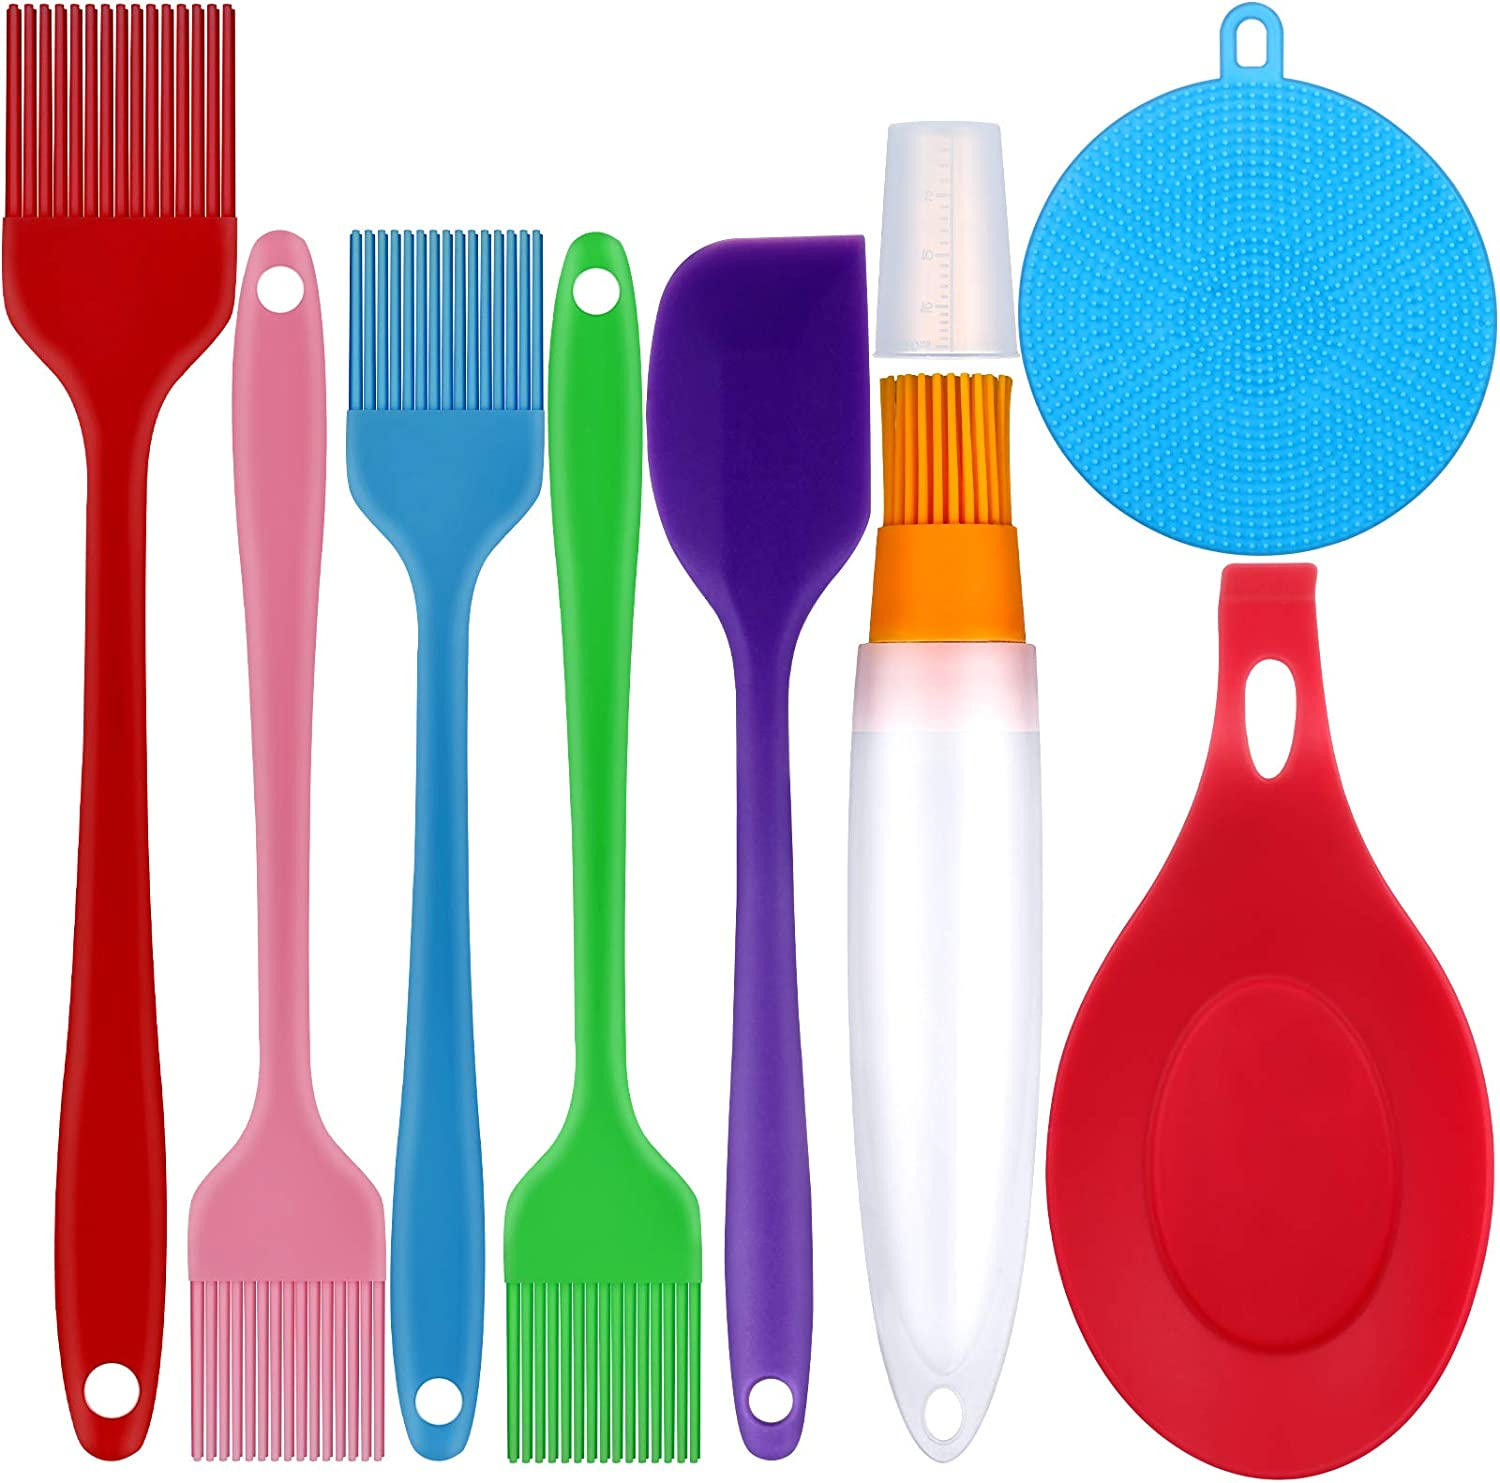 Remagr 8 Pieces Silicone Pastry Nippon regular agency Brush Cap with Kansas City Mall Bottle Set